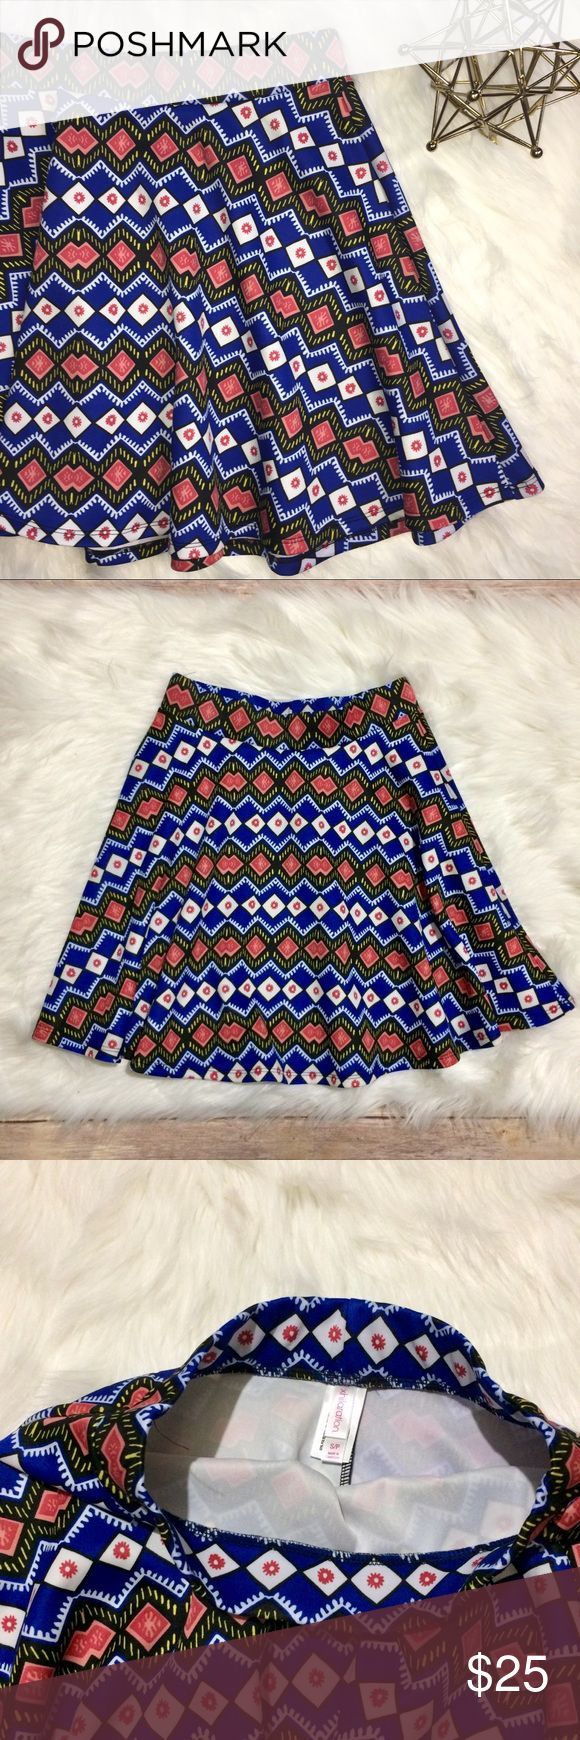 Xhilaration Tribal Print Skirt 🌟 Super cute tribal print skirt from Xhilaration. Skirt is size S. Fabric content is 93% Polyester and 7% Spandex.   Measurements approximately:  🌺 Waist: 26 inches and does have some stretch Xhilaration Skirts